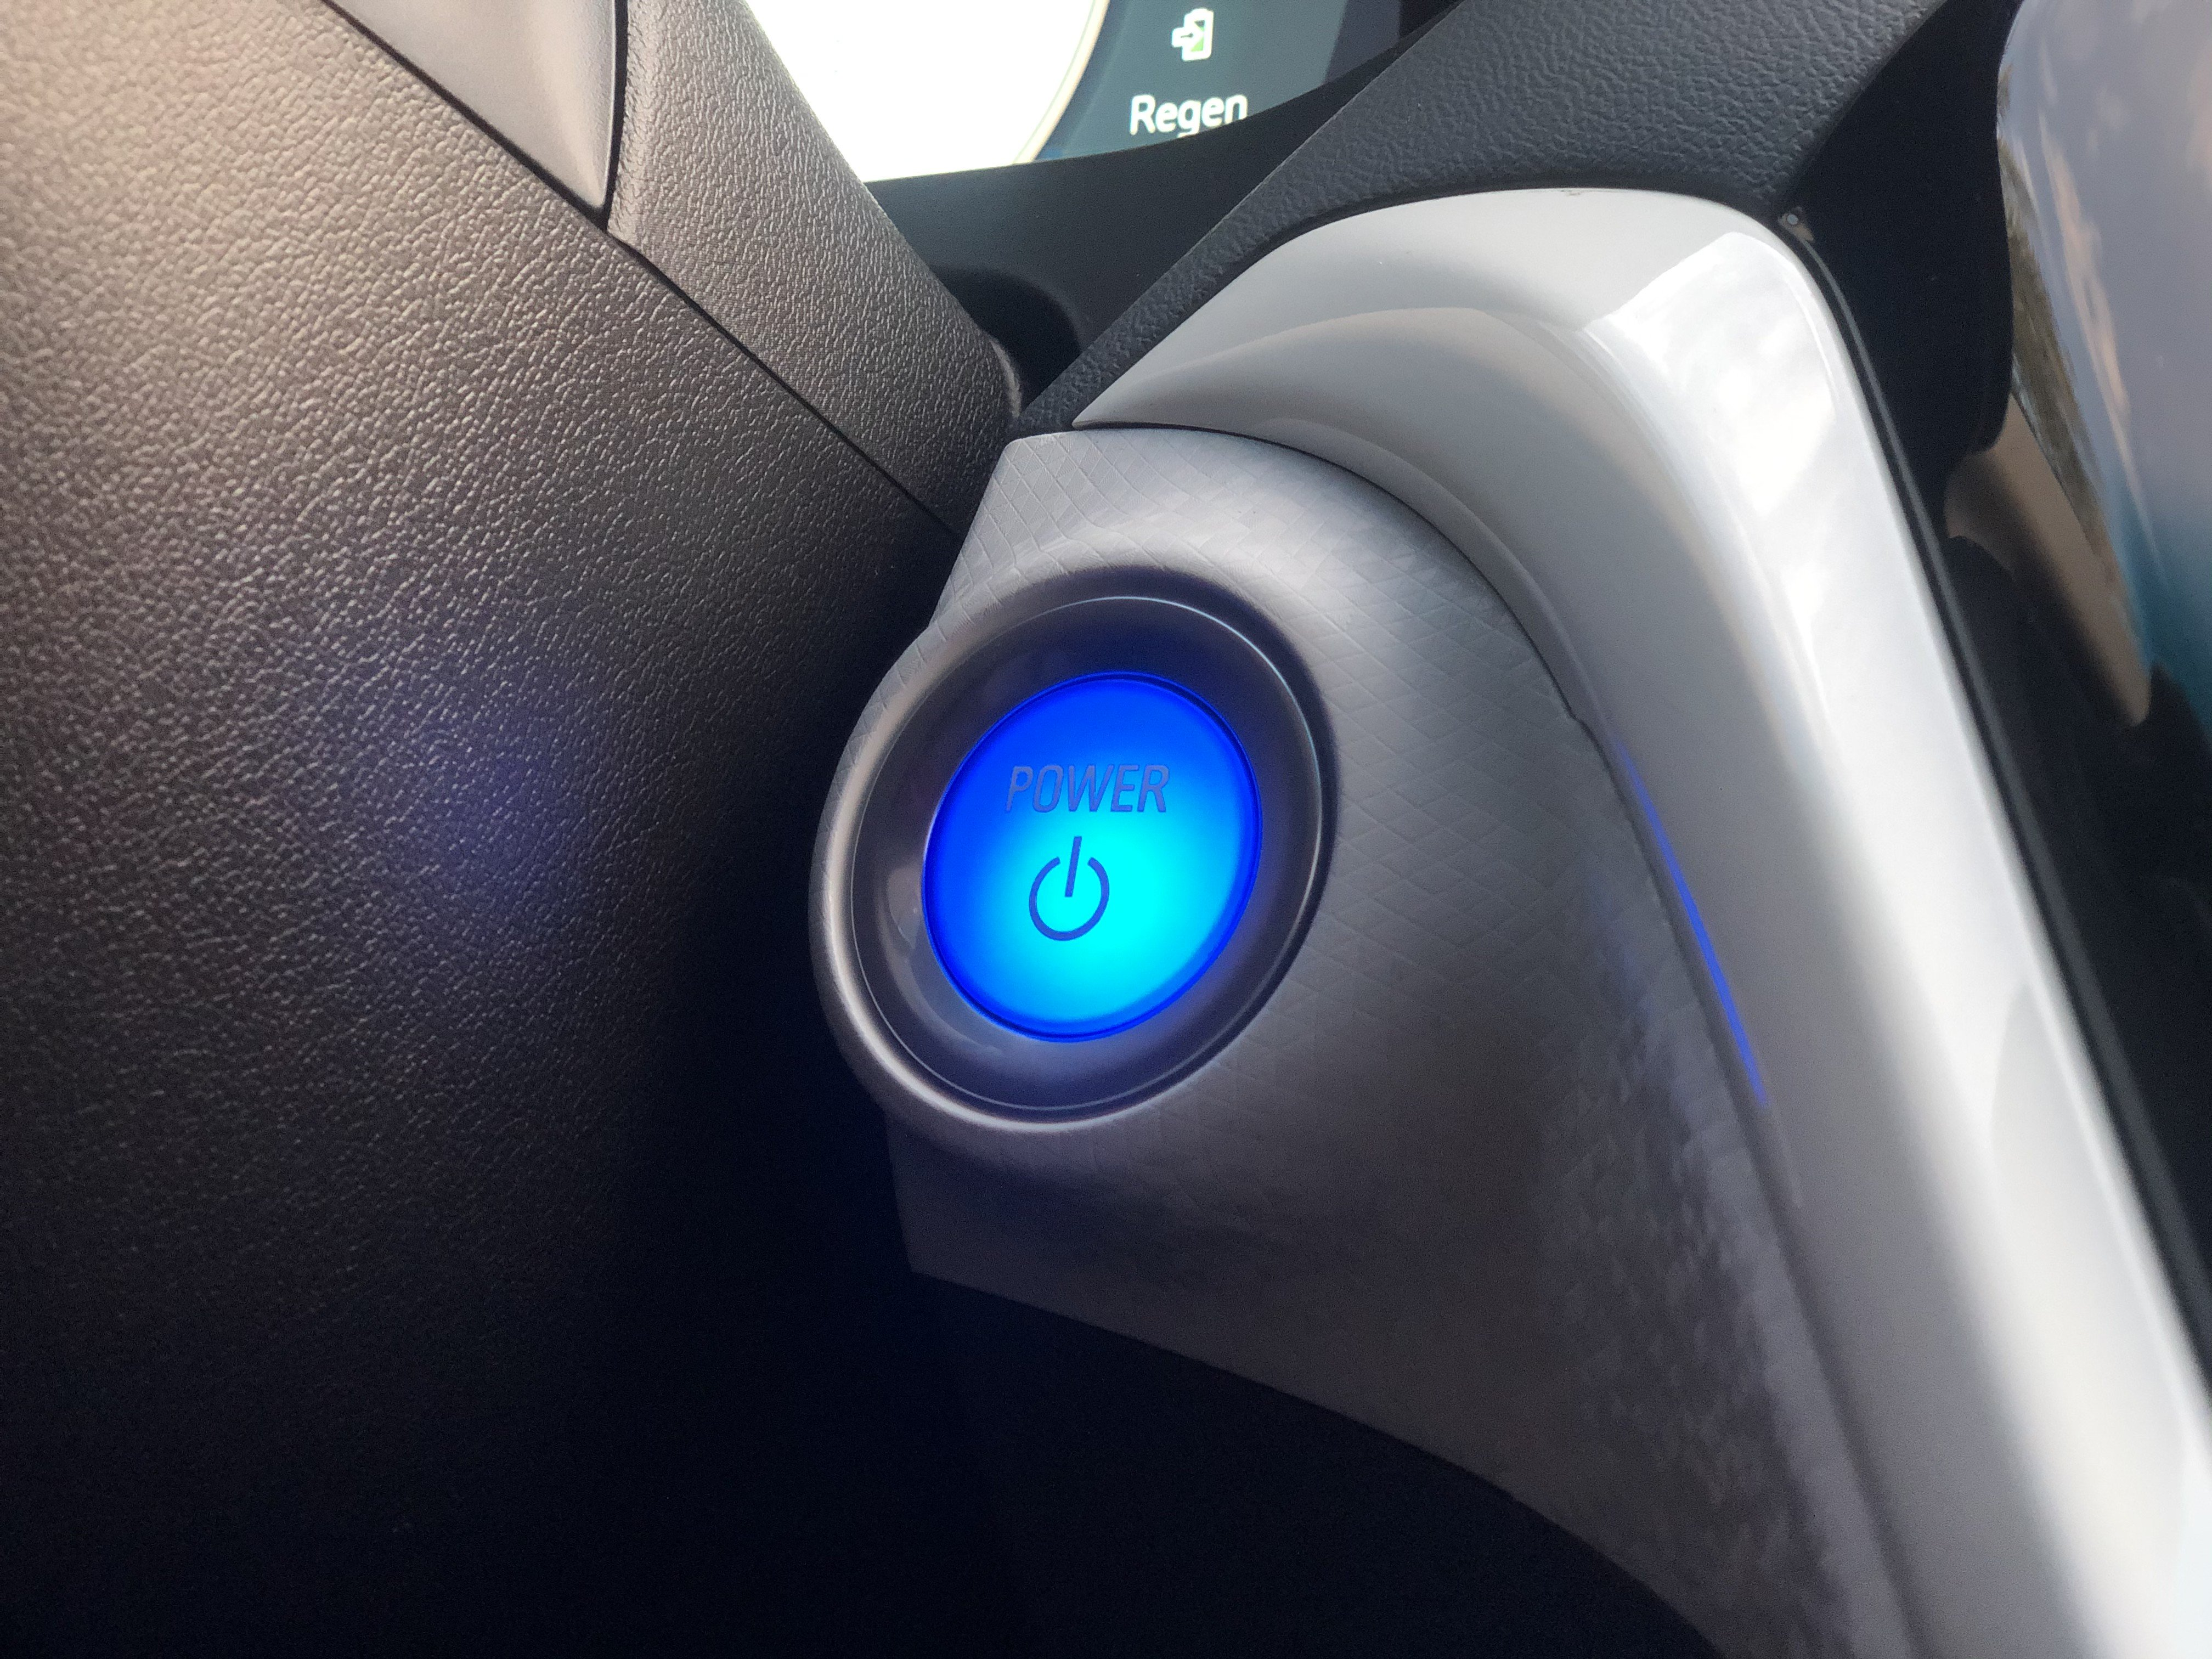 2019 CHEVROLET BOLT EV Interior Engine Push Start